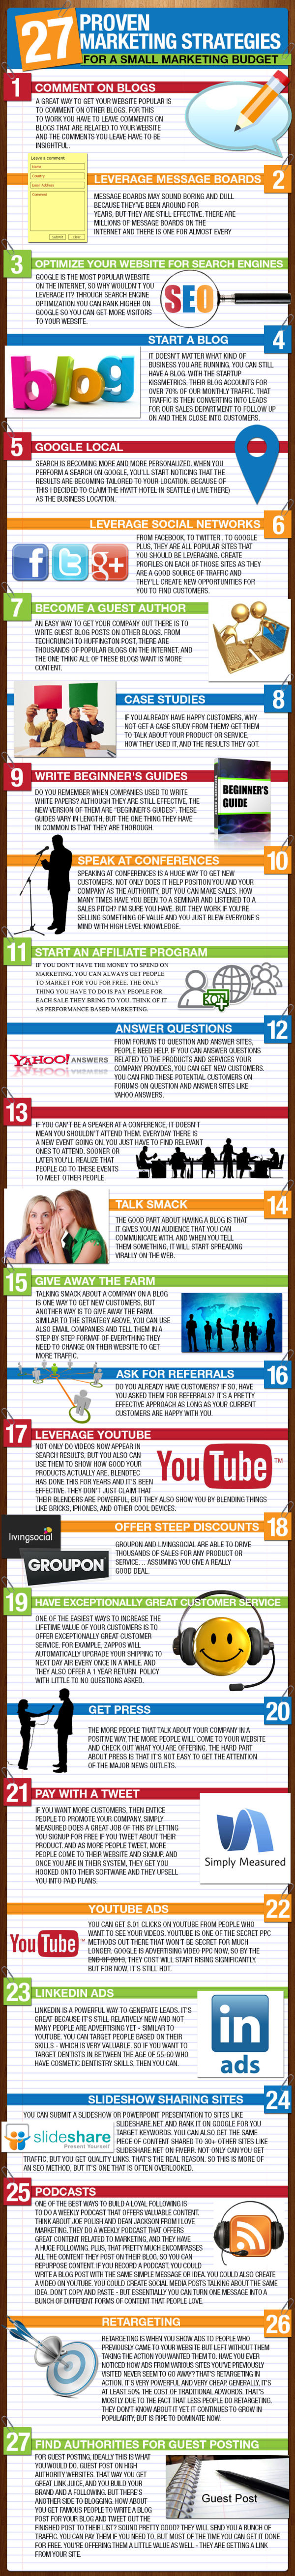 27-marketing-strategies-infographic